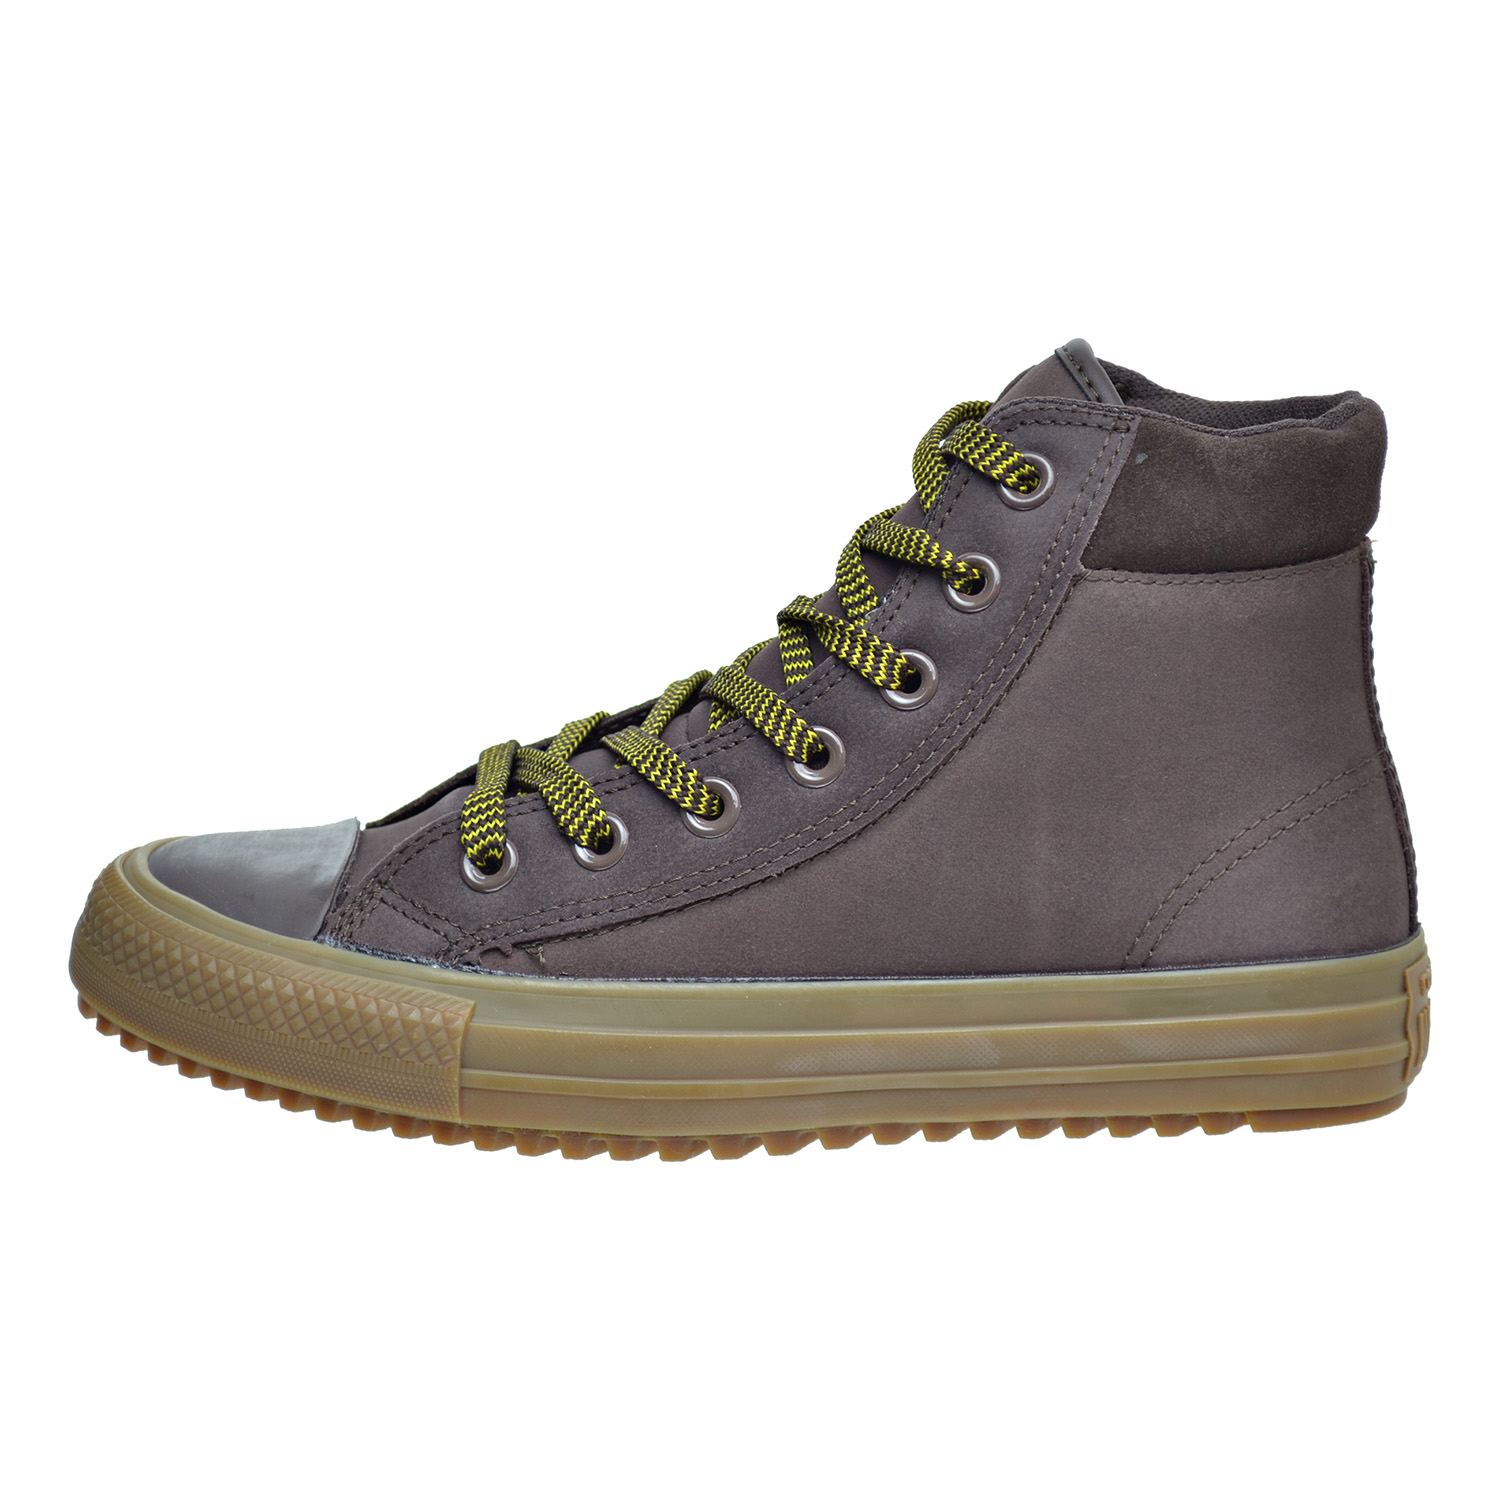 0a7bc2f73f77 Converse Chuck Taylor All Star PC High Top Men s Boots Burnt Umber Lemon Gum  153674c